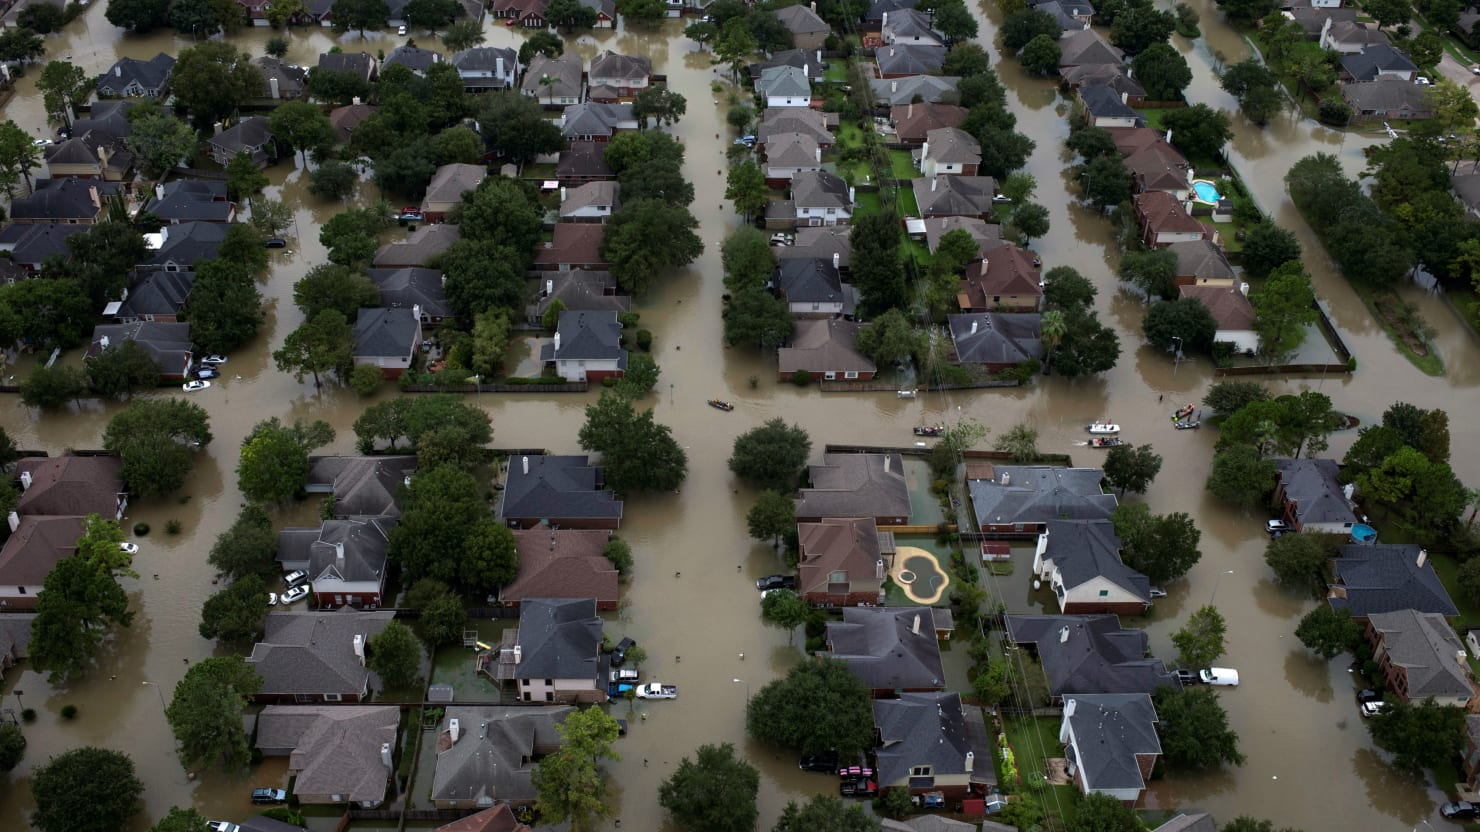 Extreme Weather Has Cost U.S. Taxpayers $350 Billion